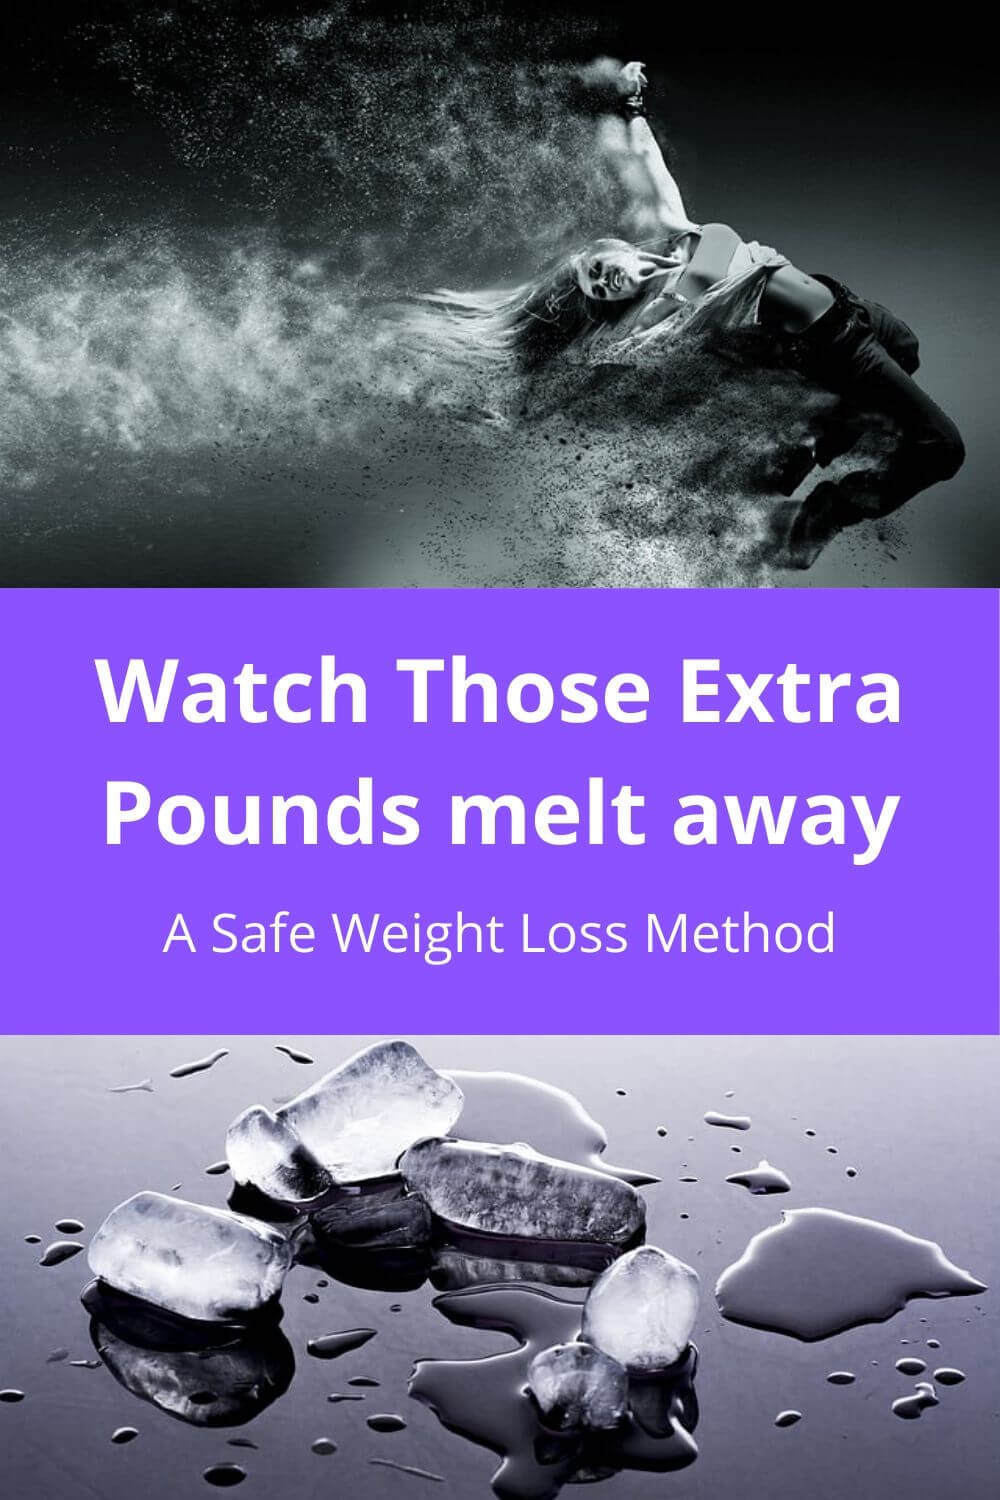 Watch Those Extra Pounds Melt away... a safe weight loss method